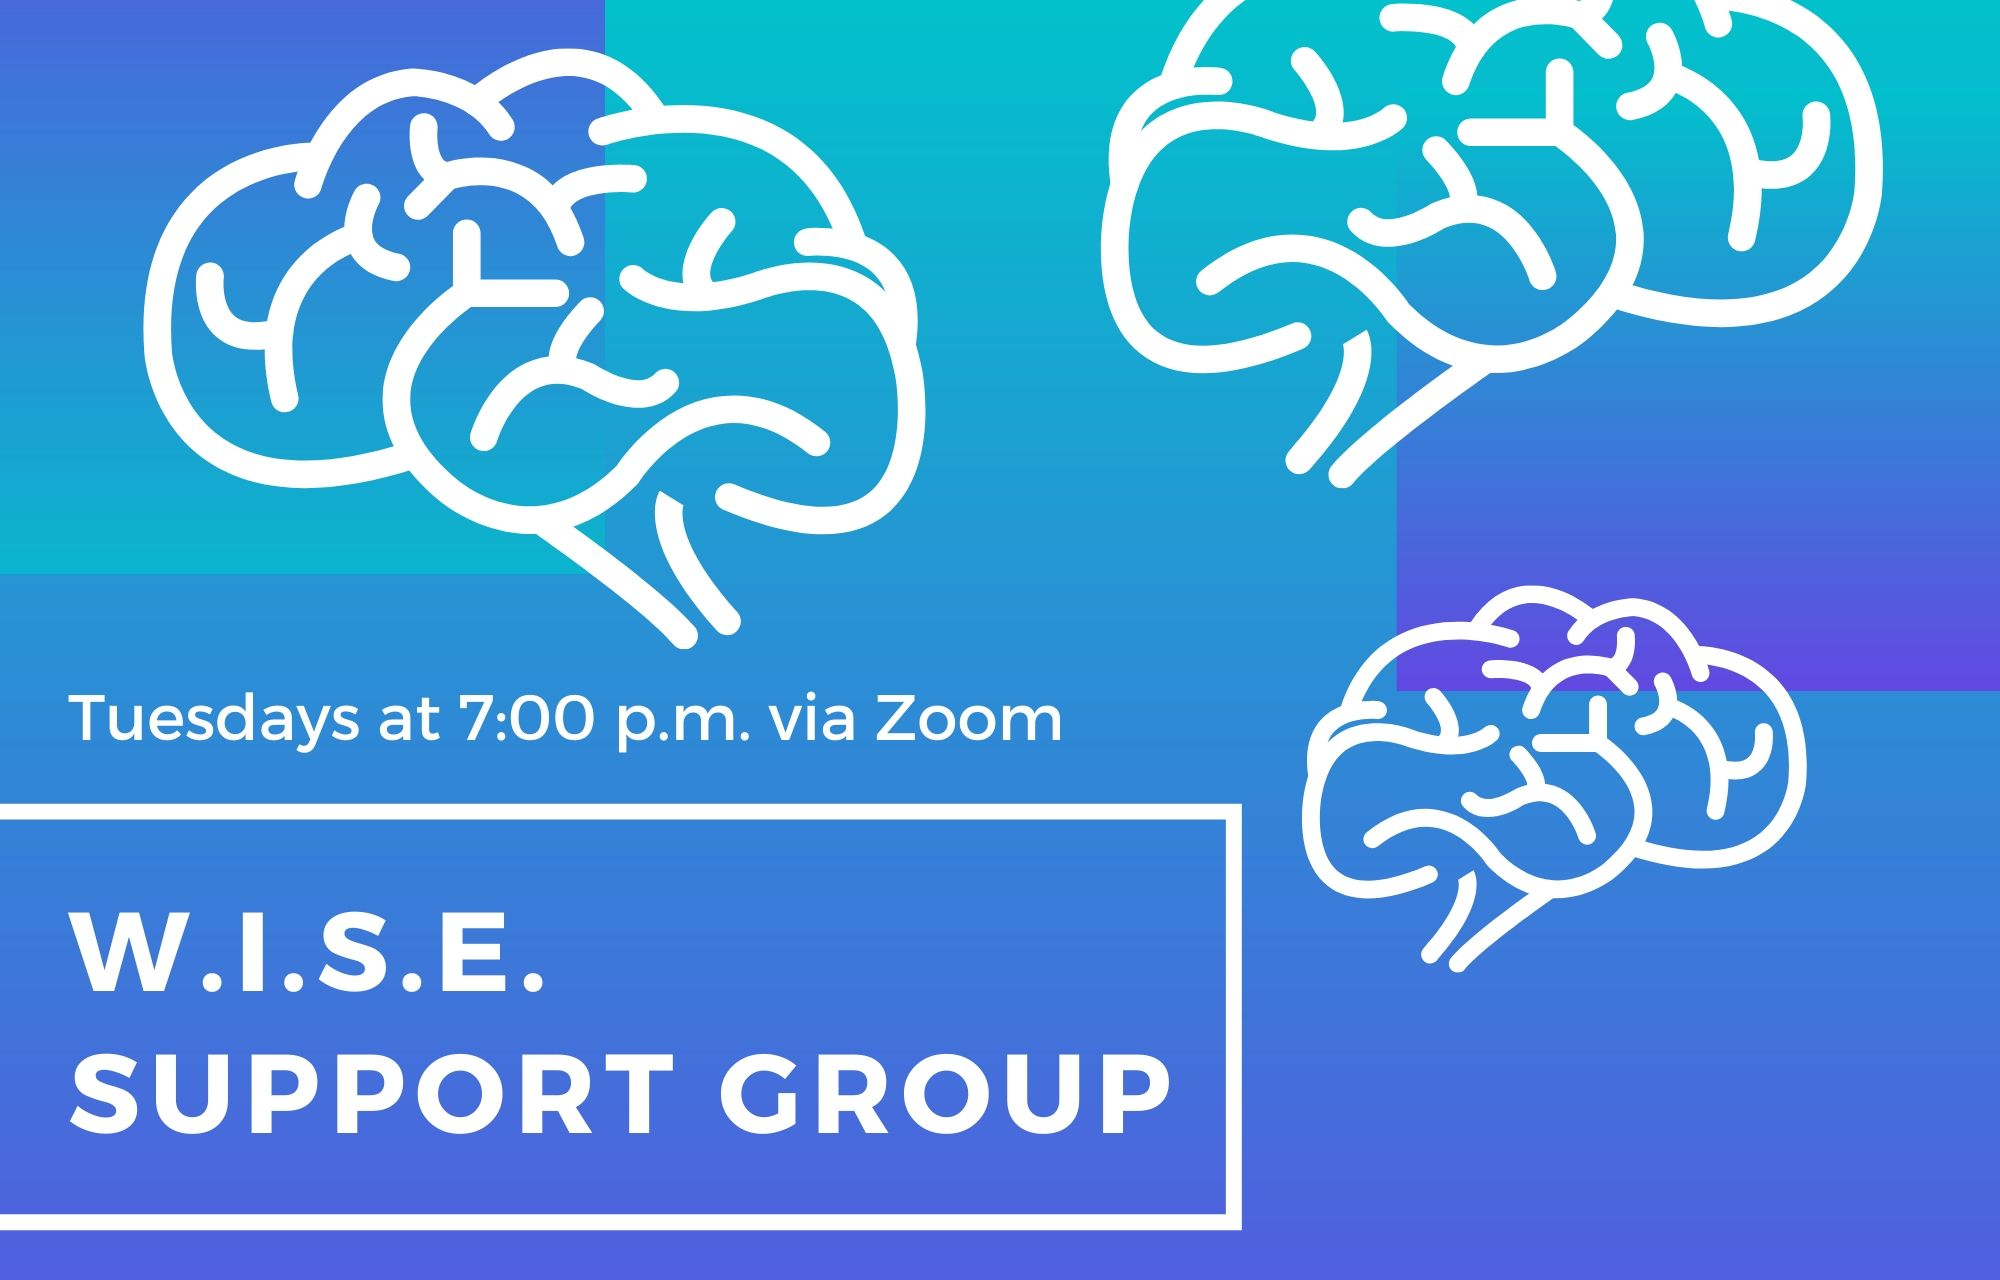 WISE Support Group: Tuesday Evenings